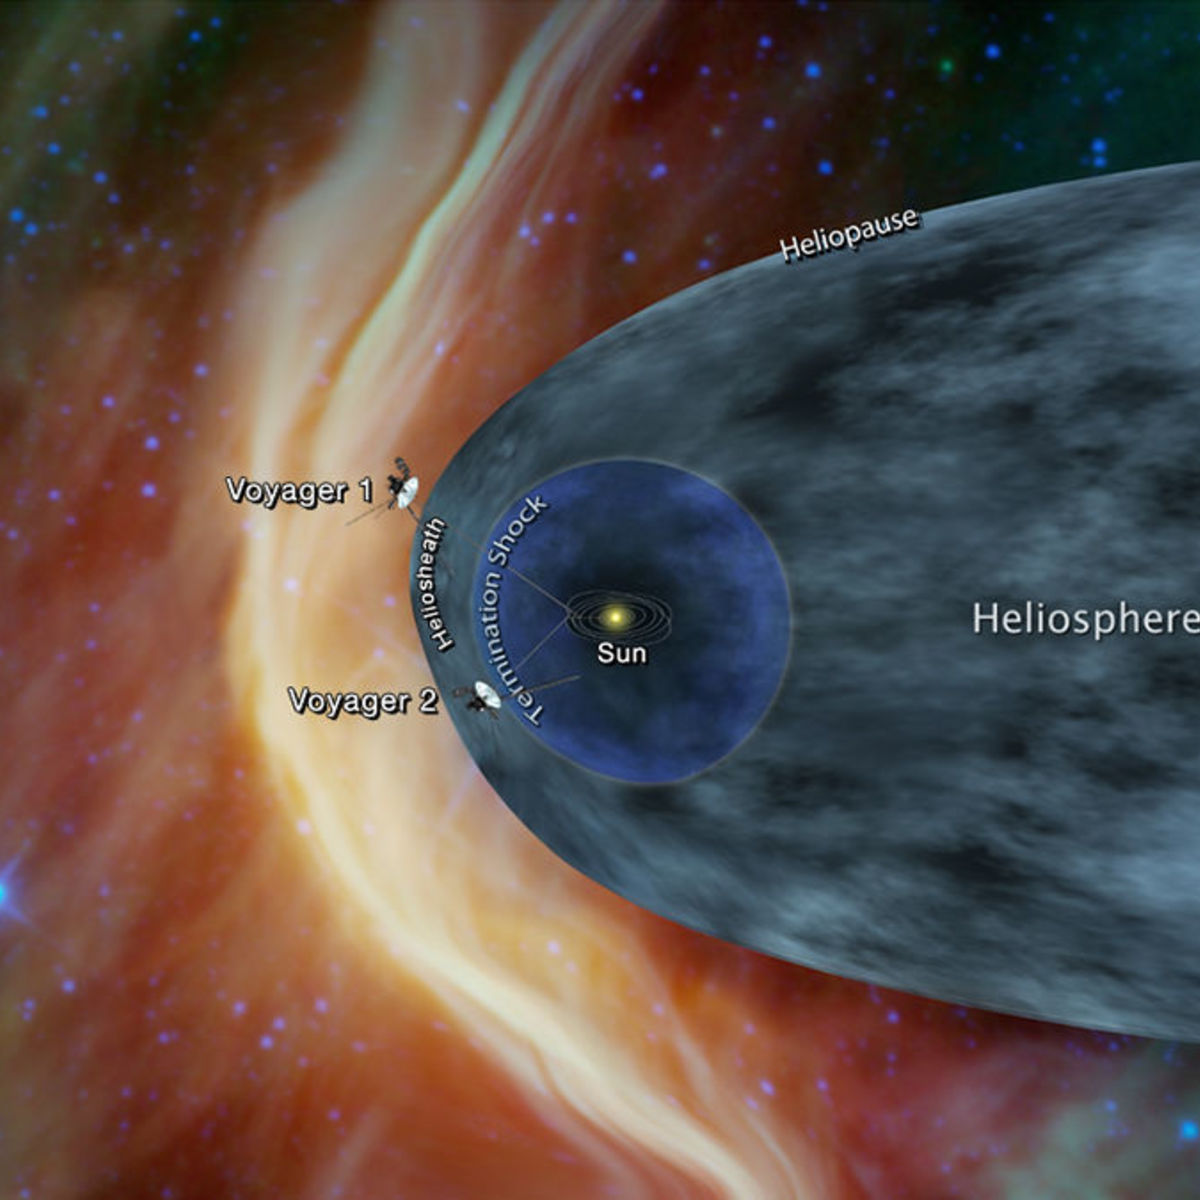 Voyager 1 and Voyager 2